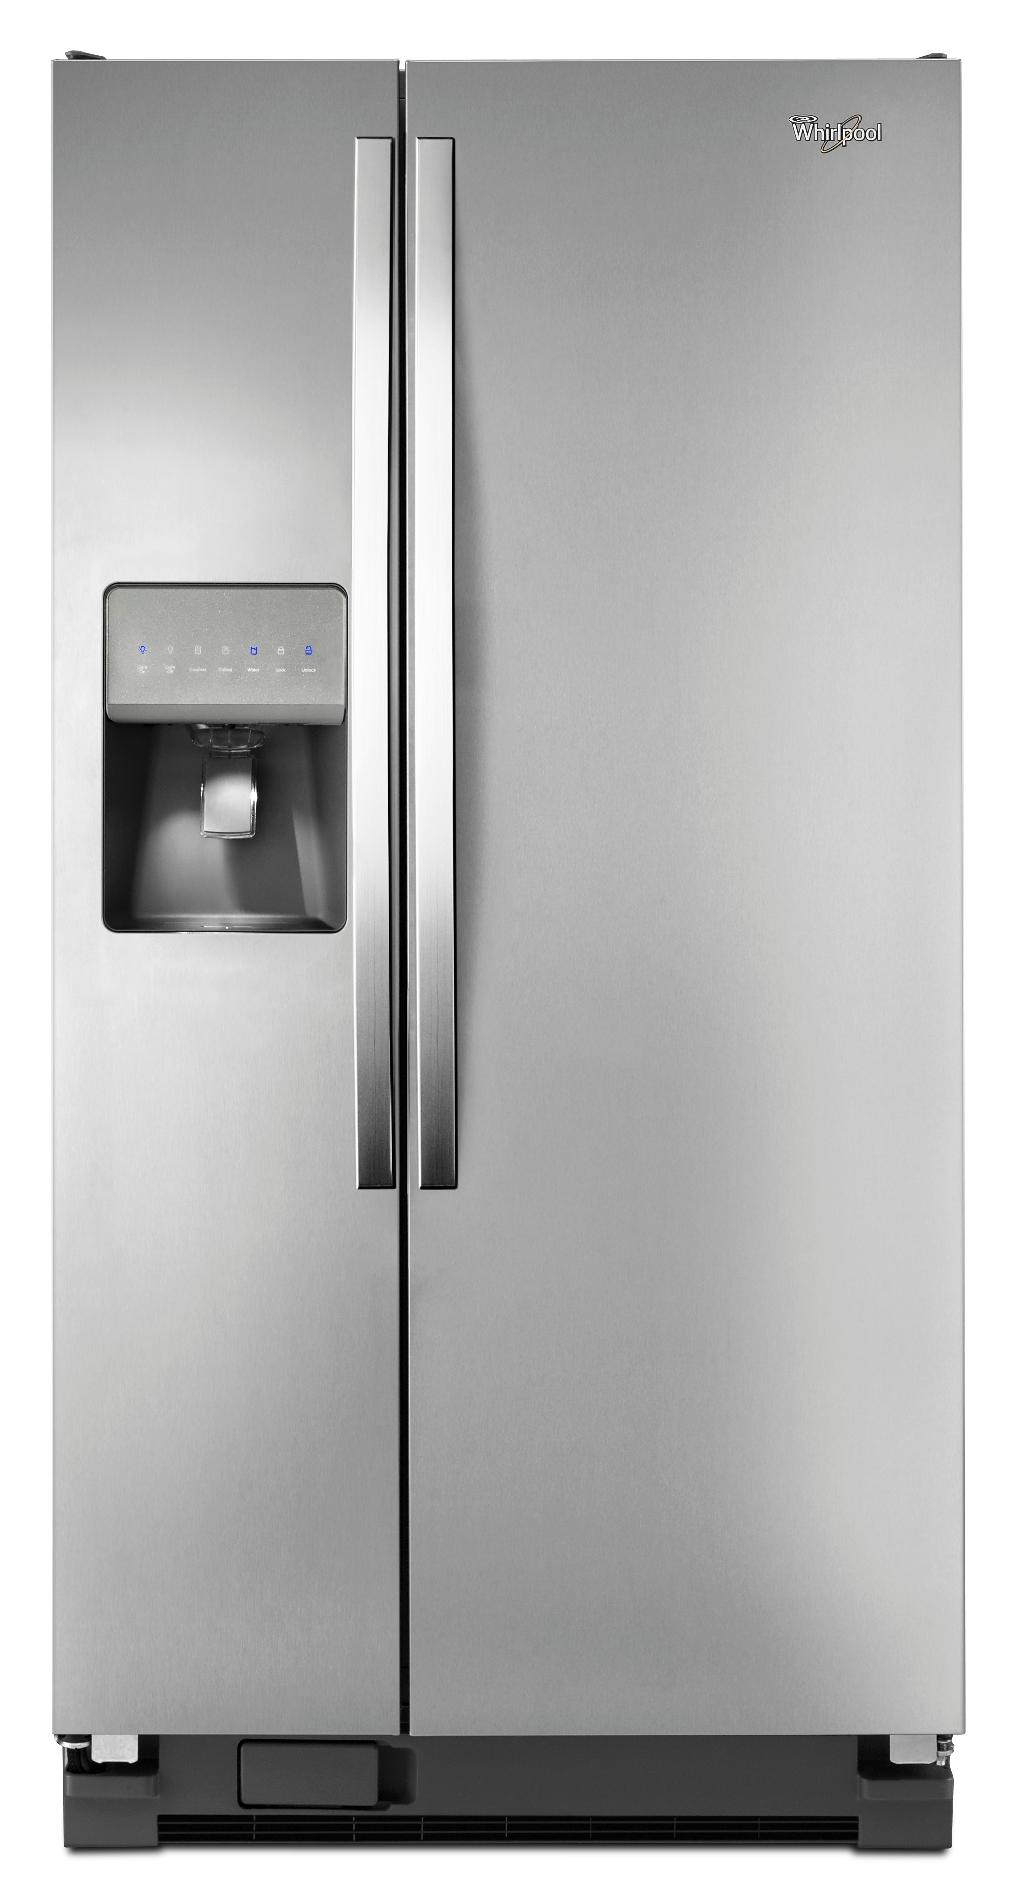 Whirlpool WRS322FDAM 21 cu. ft. Side-by-Side Refrigerator w/ Accu-Chill™ - Stainless Steel